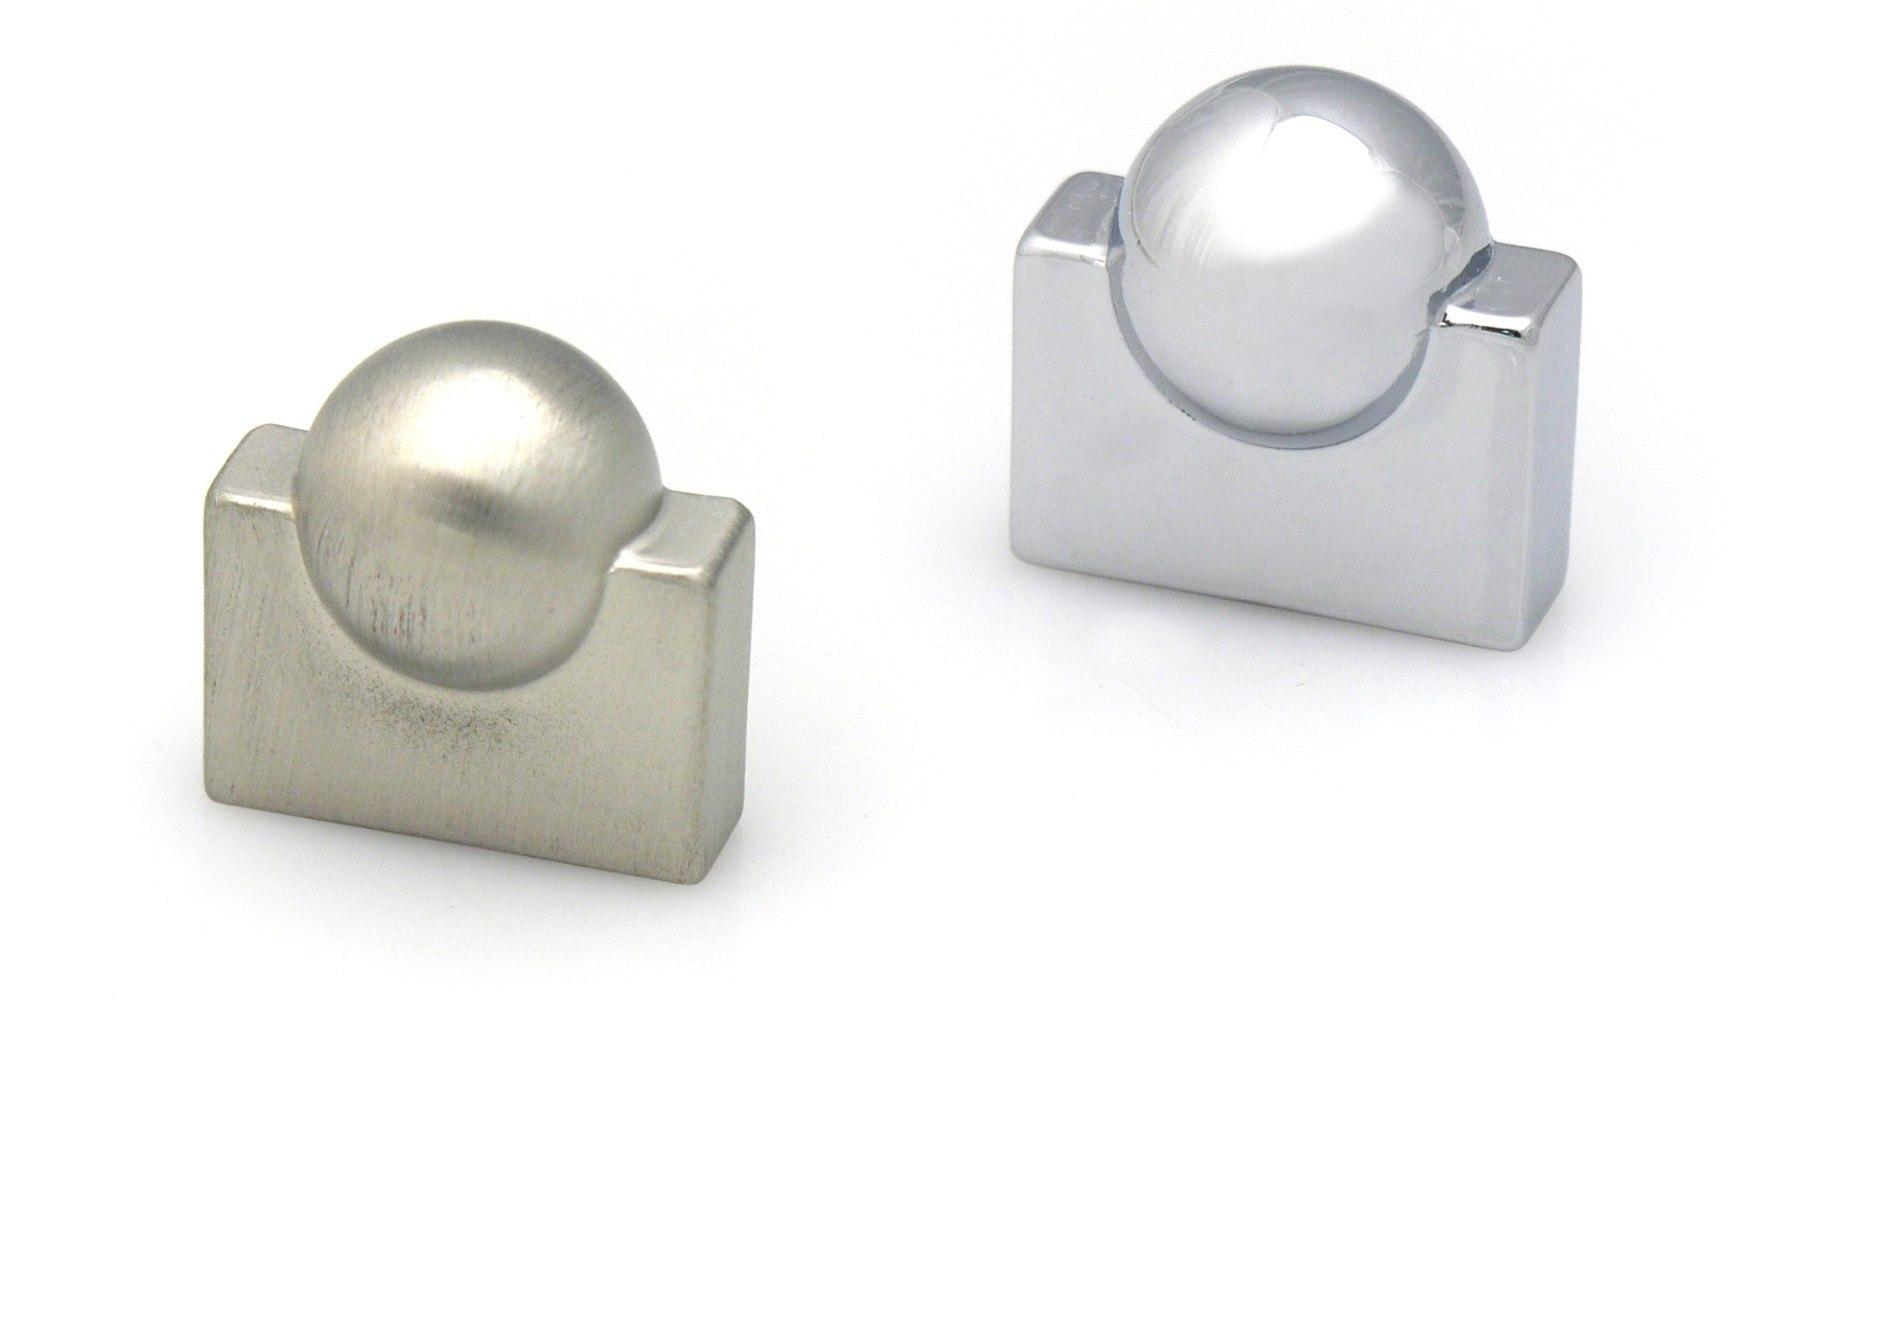 TOPEX Z40680160067 KNOB WITH CENTER BALL 5/8 INCHES (16MM) STAINLESS STEEL LOOK